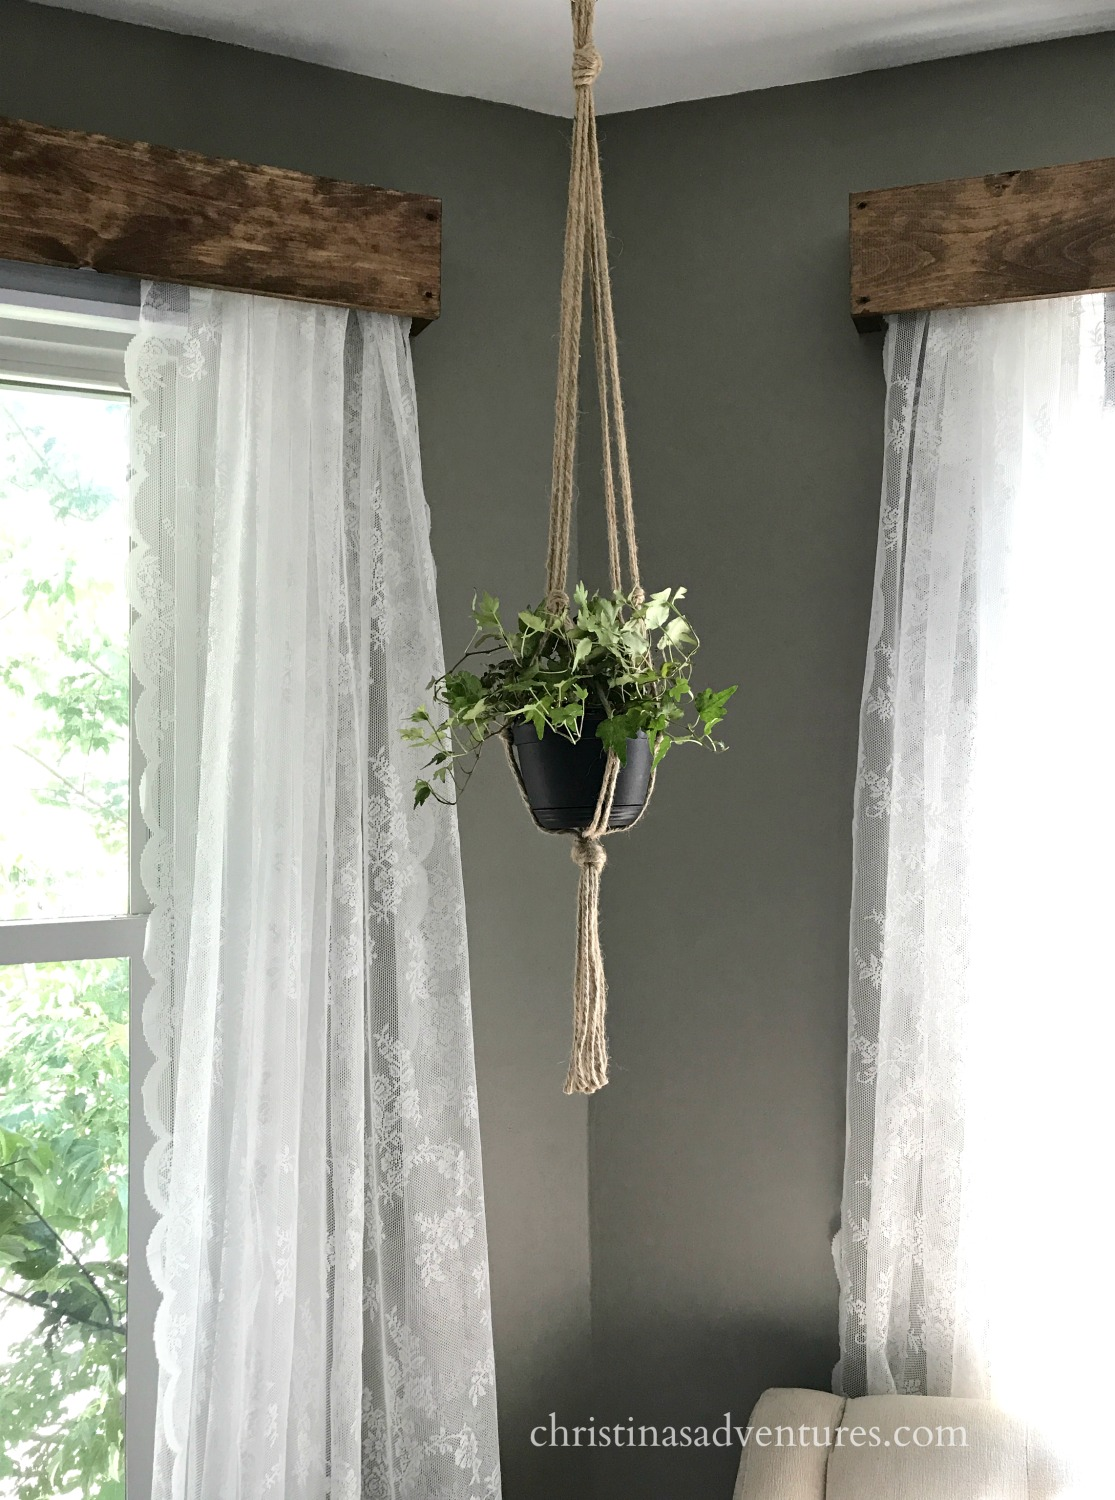 Diy Wood Window Valance With Lace Curtains Dark Gray Walls And A Hanging Rope Planter